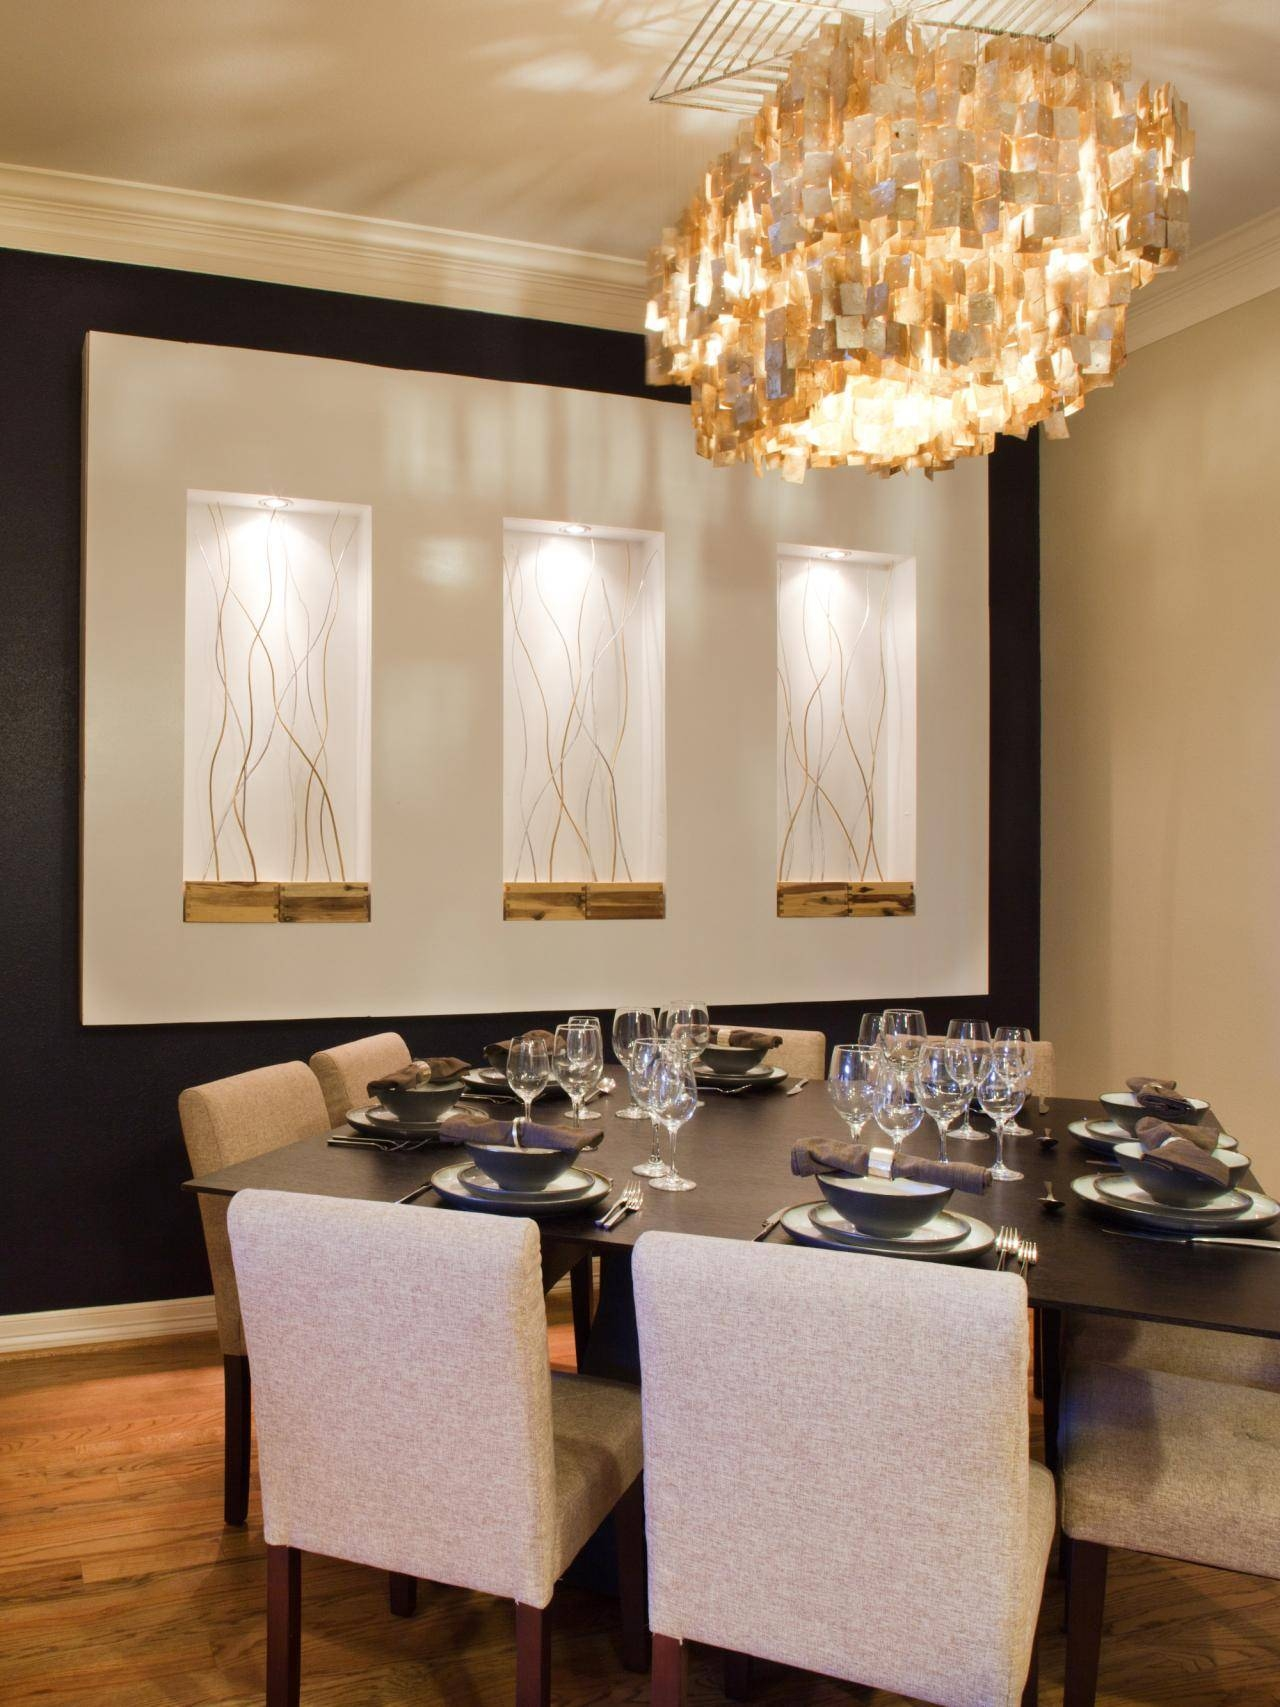 Modern Wall Art For Dining Room – Alliancemv Pertaining To Most Up To Date Dining Wall Art (View 22 of 25)